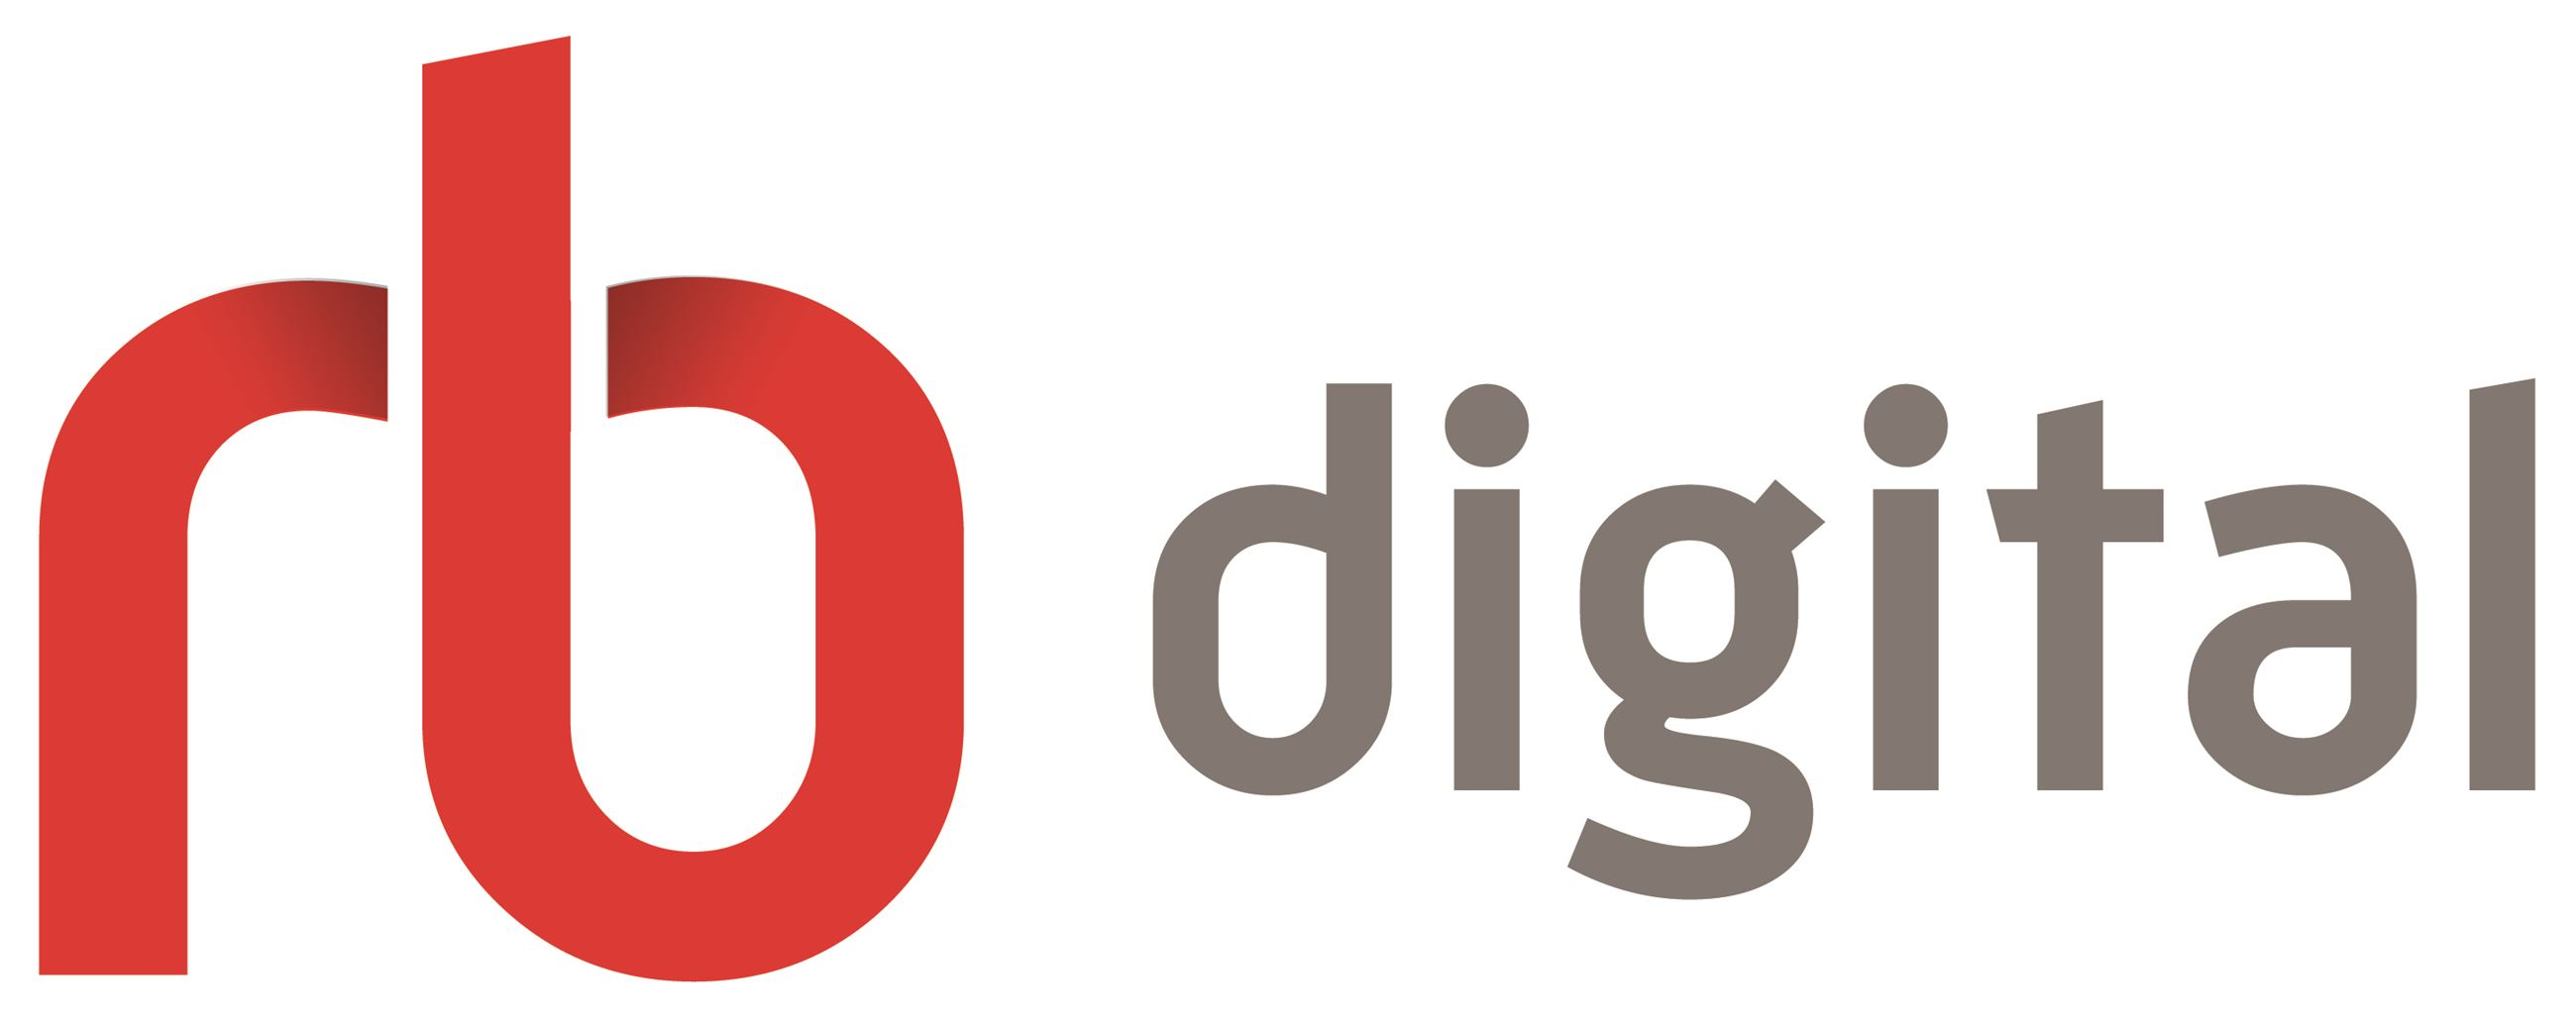 RBDigital Logo Image Opens in new window